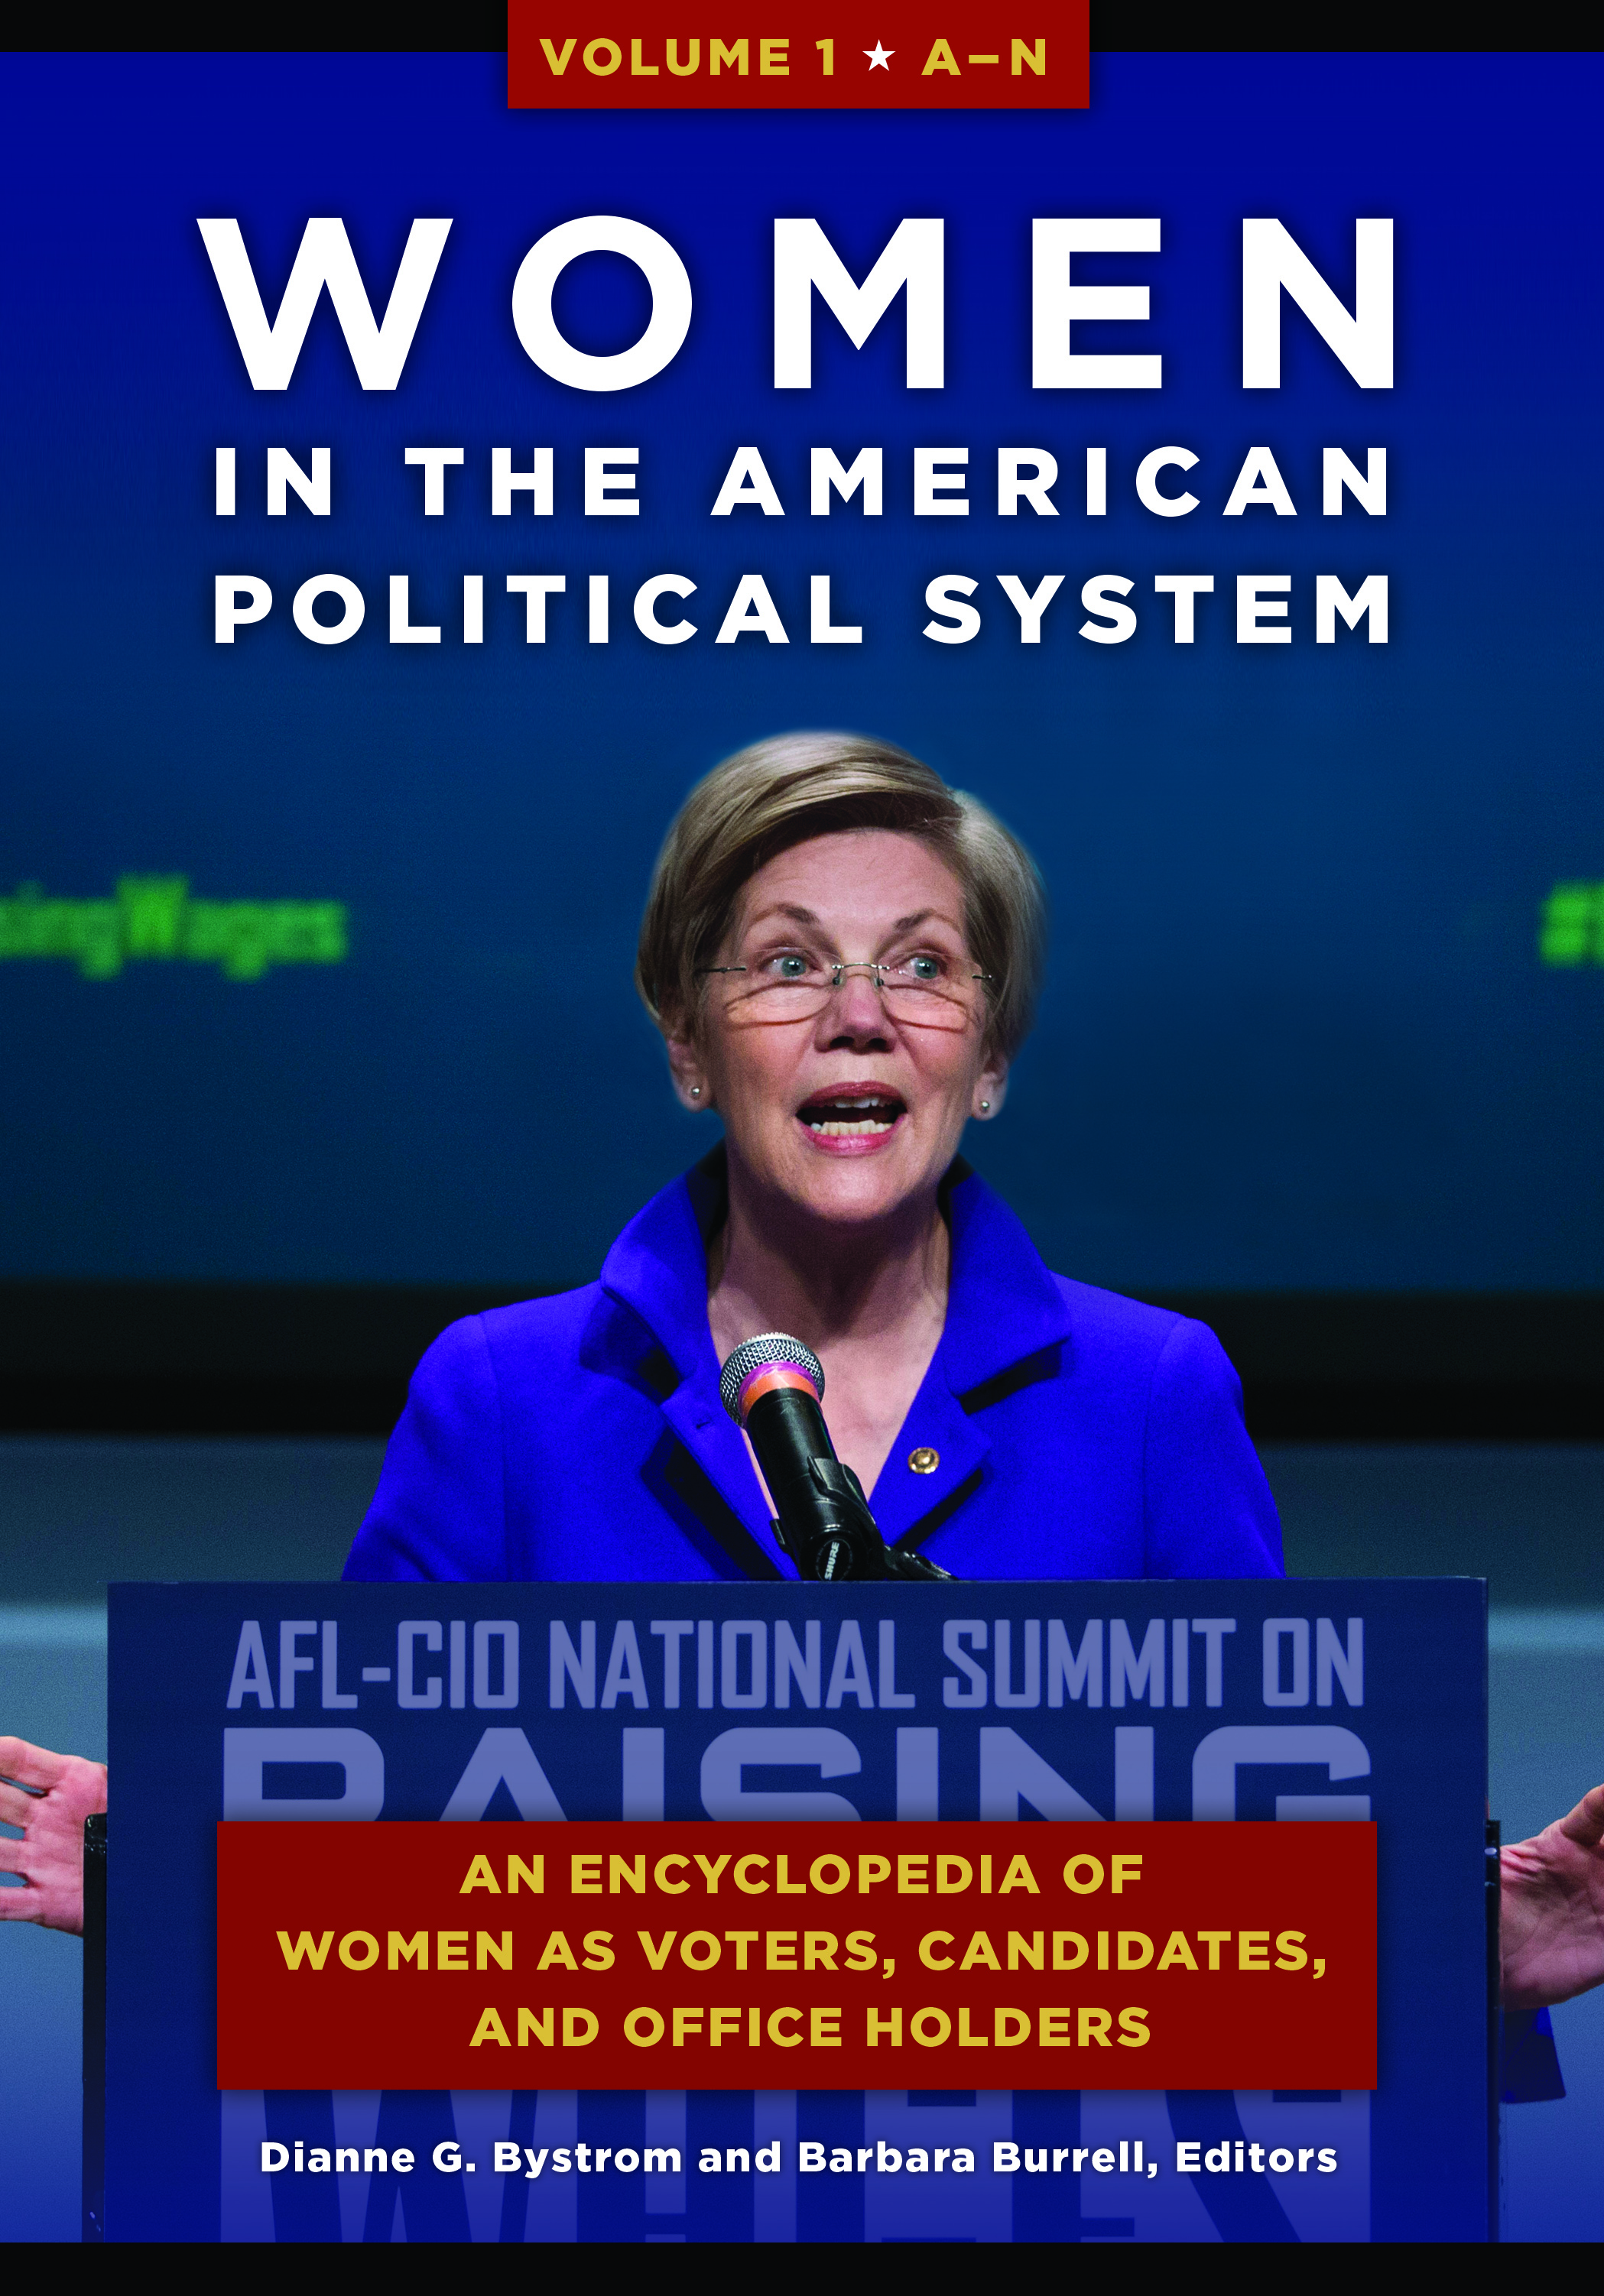 Women in the American Political System: An Encyclopedia of Women as Voters, Candidates, and Office Holders [2 volumes]